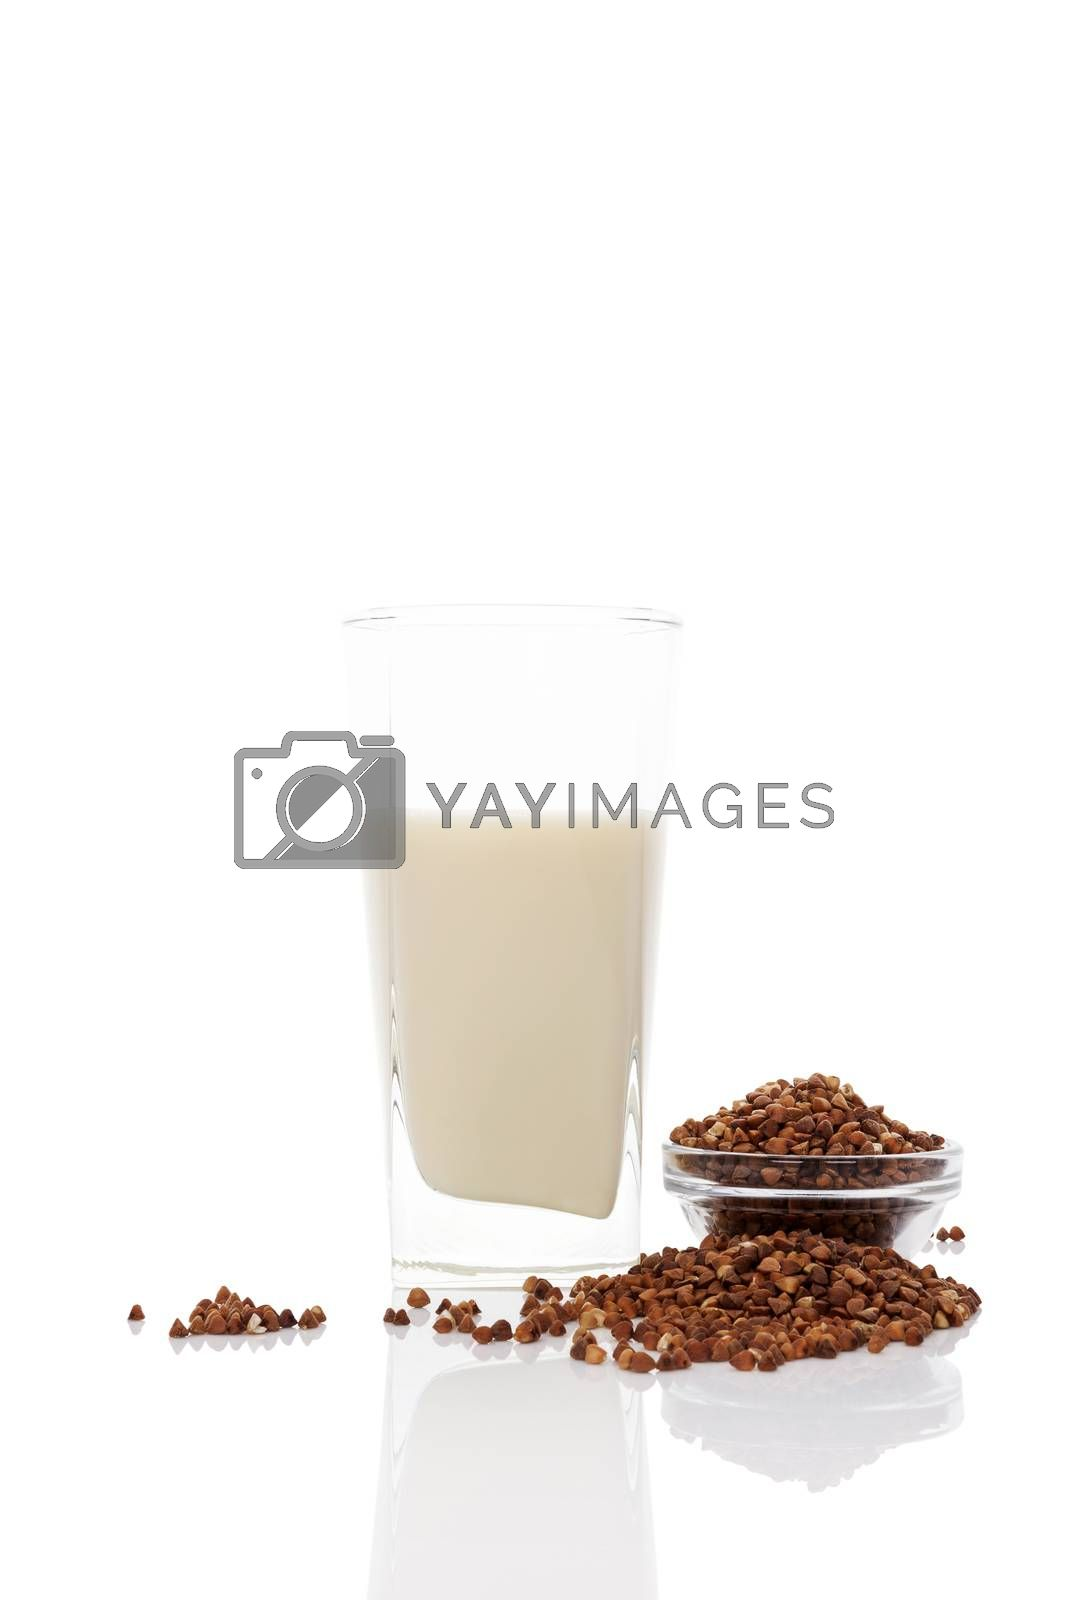 Buckwheat milk in glass with dry buckwheat seeds in glass bowl isolated on white background. Vegan and vegetarian milk concept.